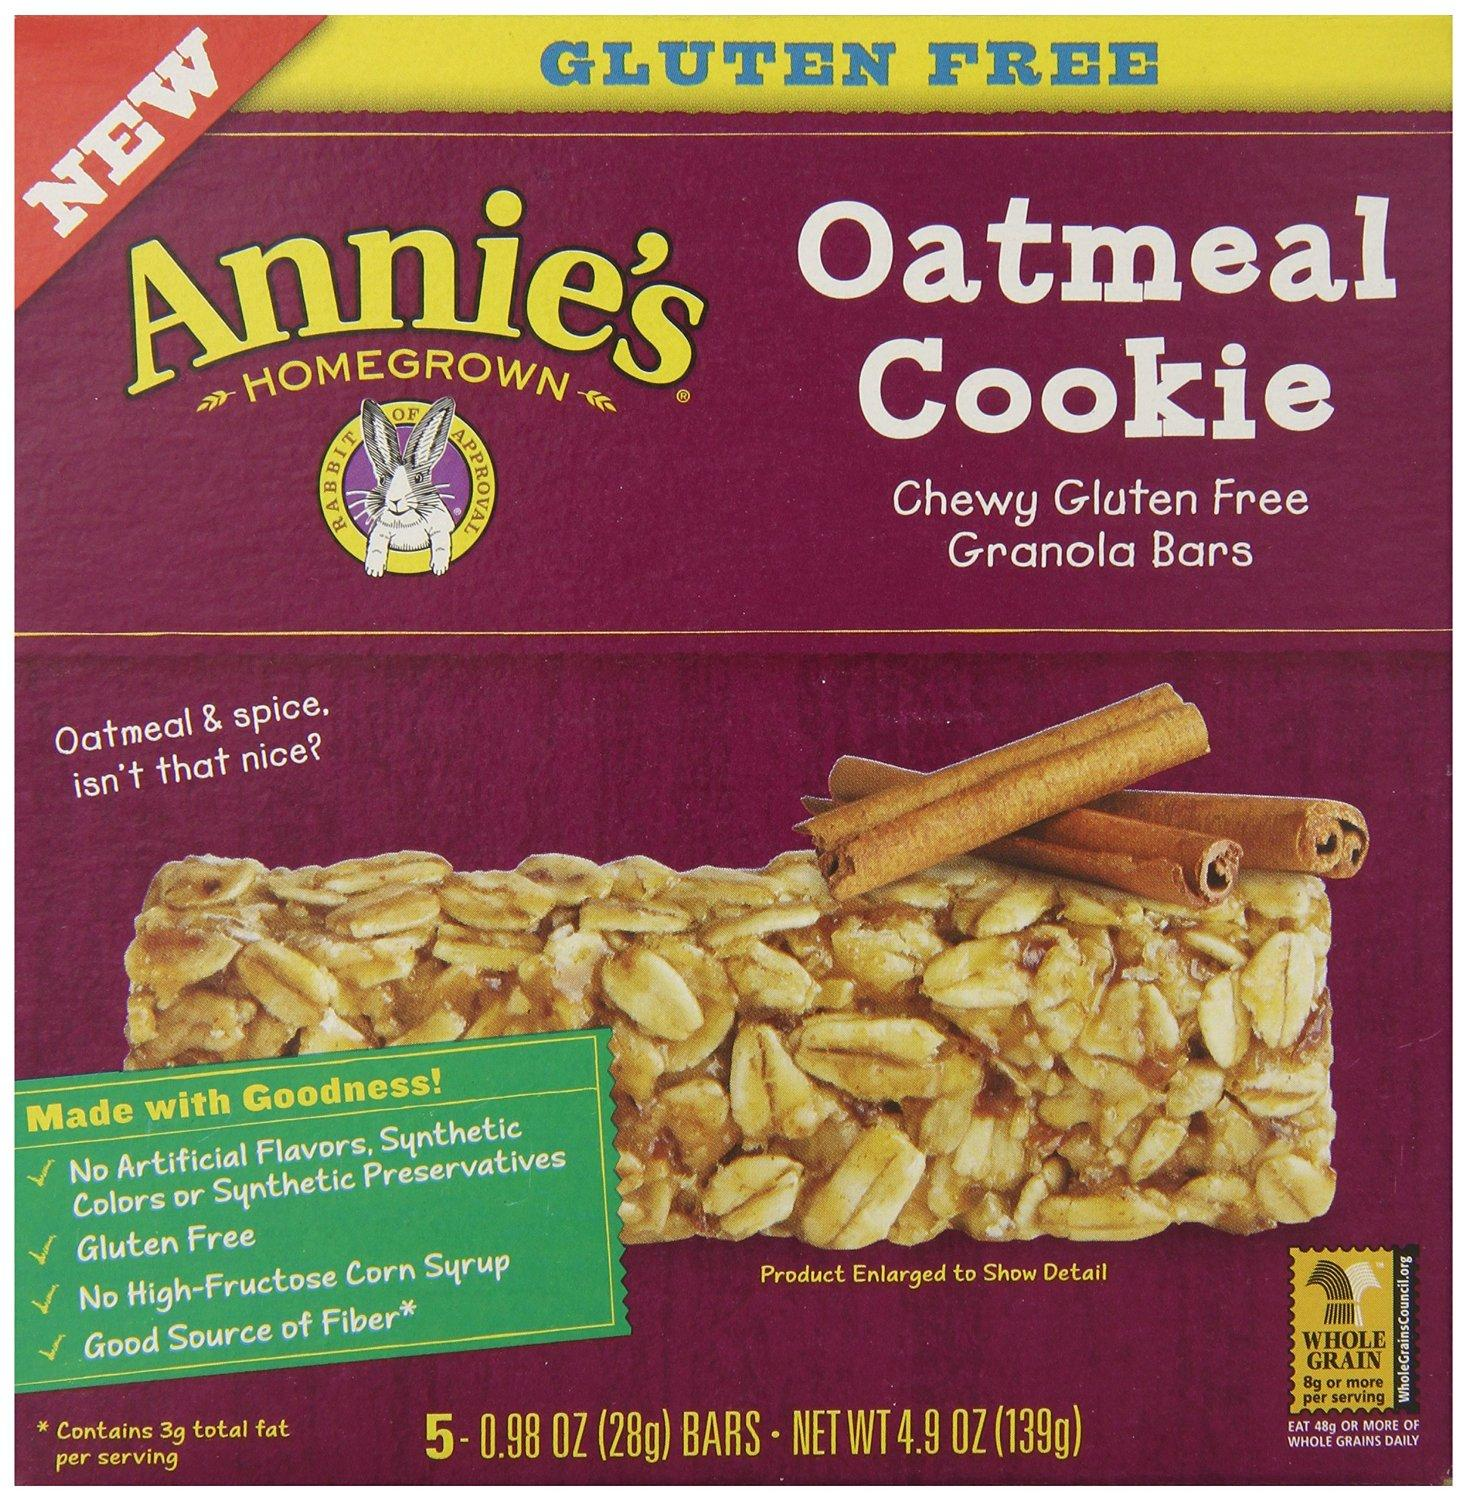 Annie's Chewy Gluten Free Granola Bars, Oatmeal Cookie, 0.98 oz. Bars, 5 Count